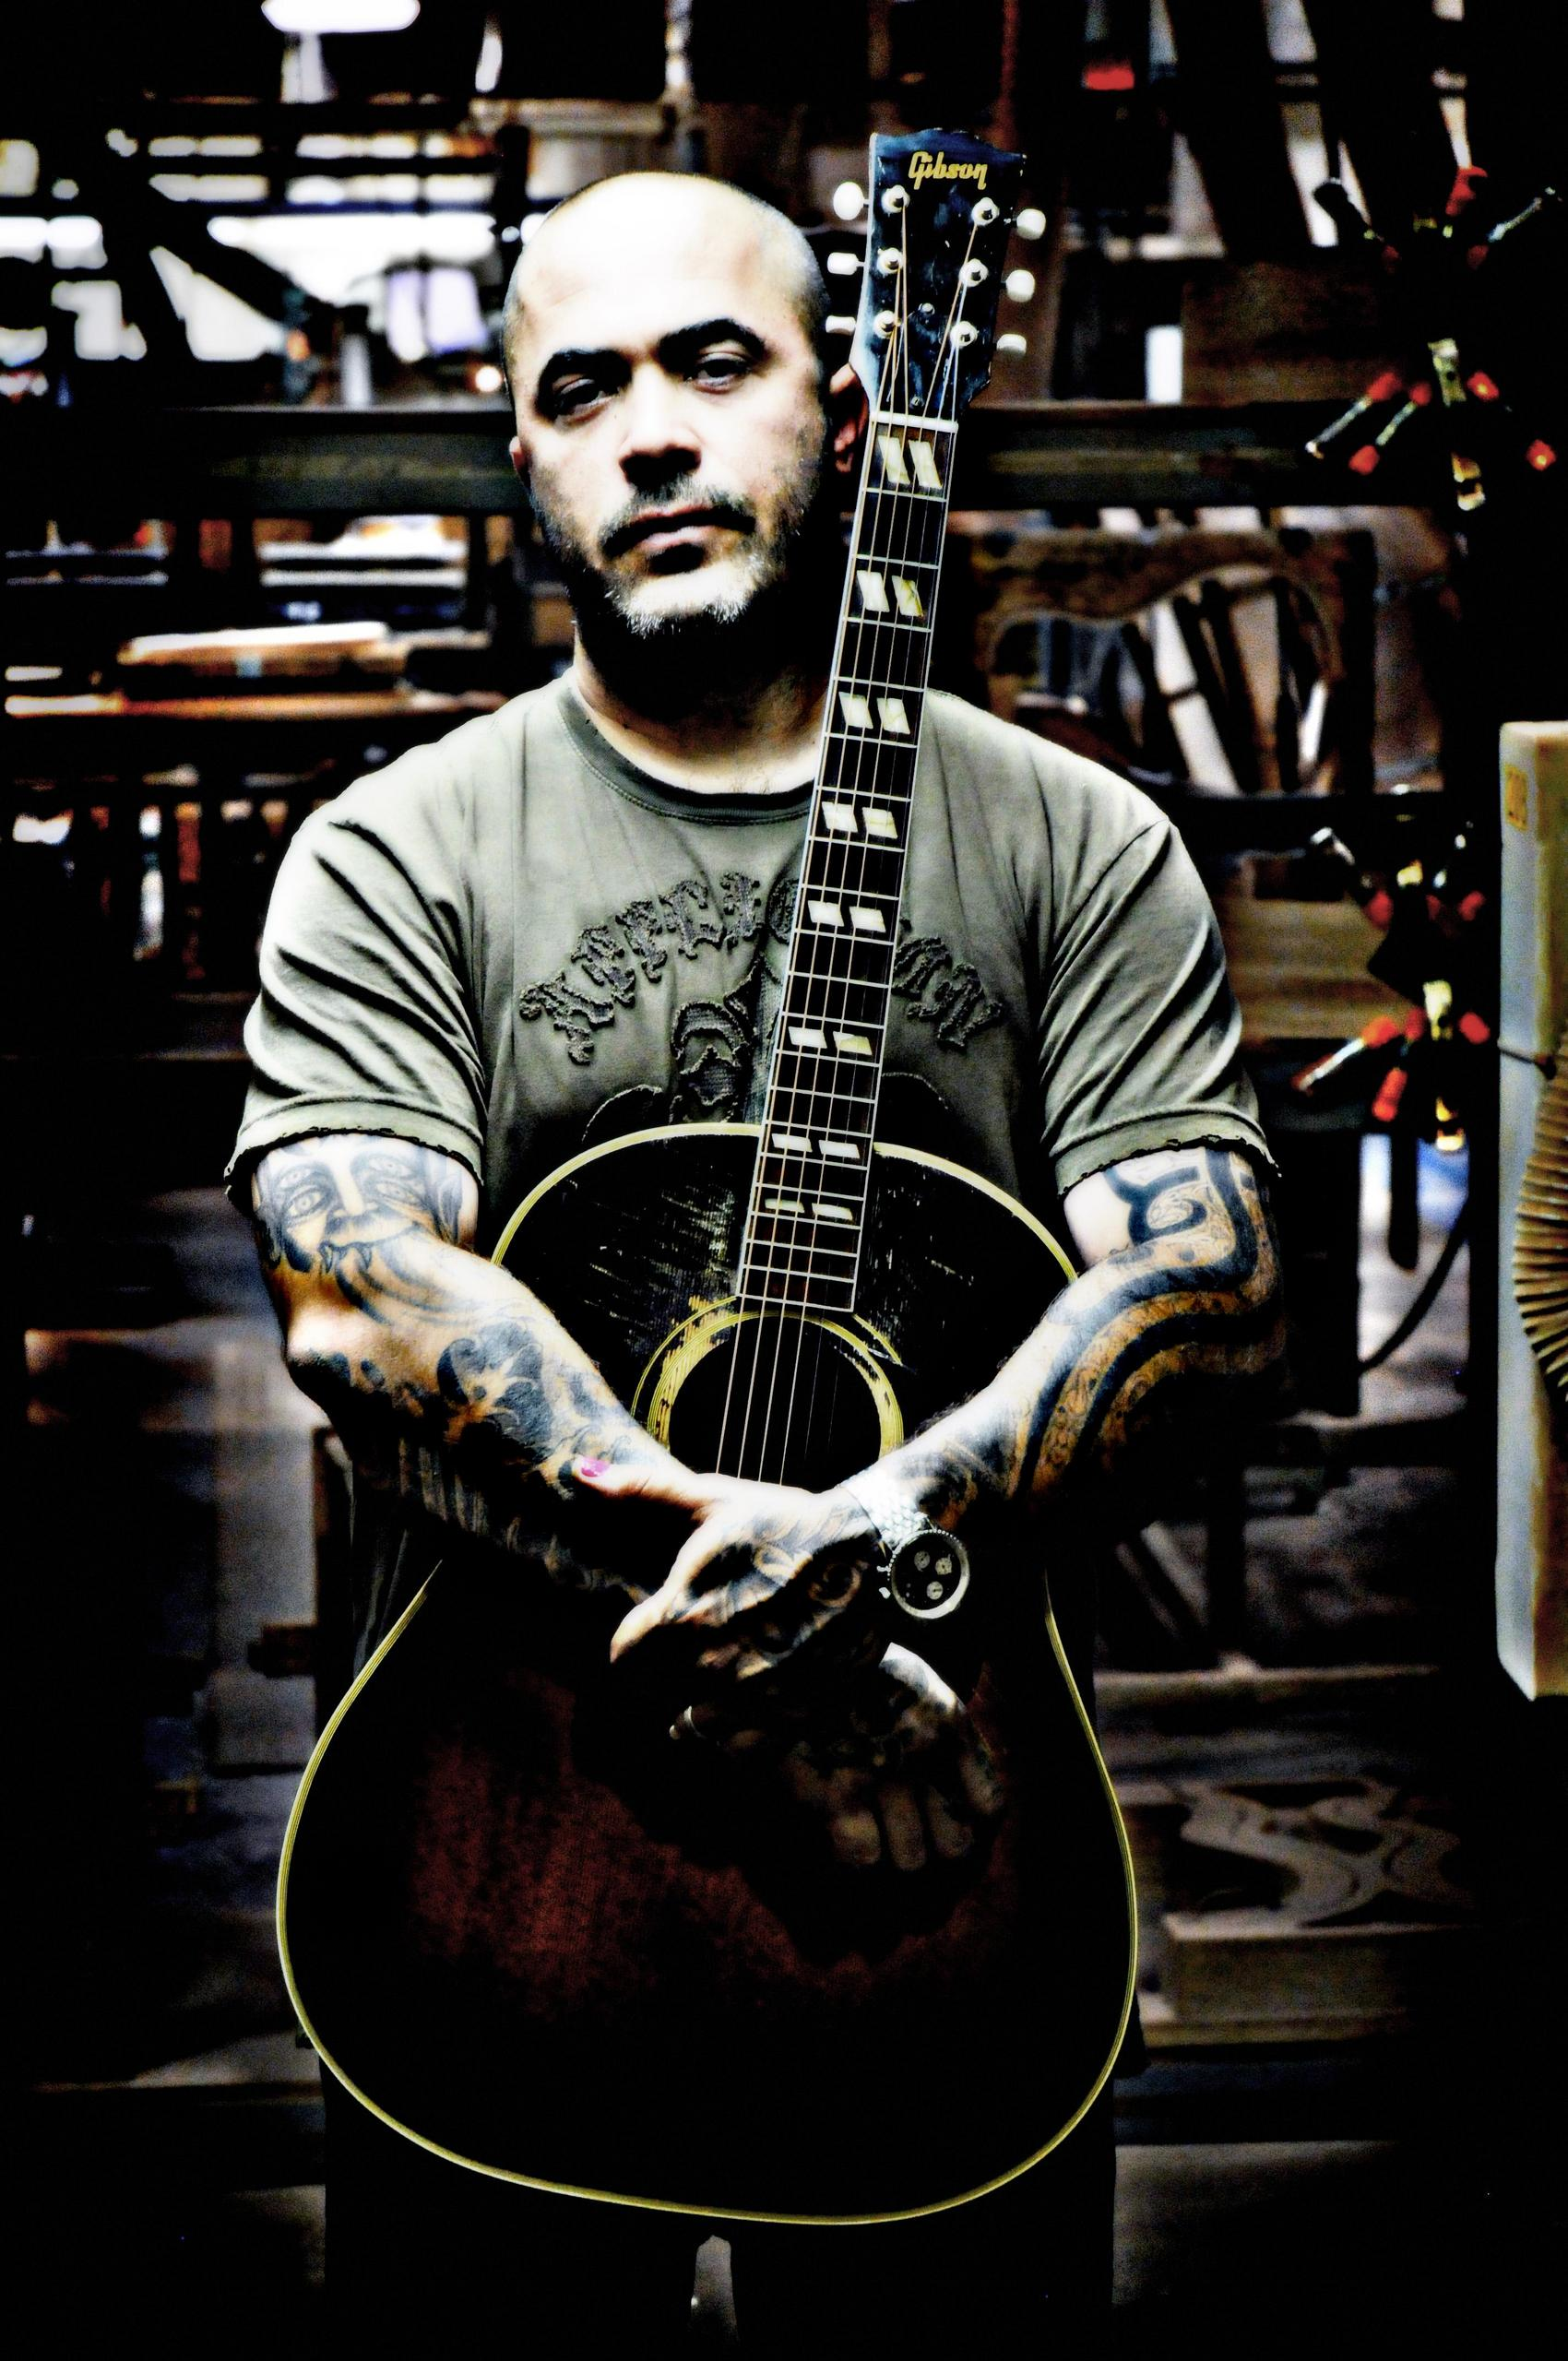 staind images staind hd wallpaper and background photos 29655673